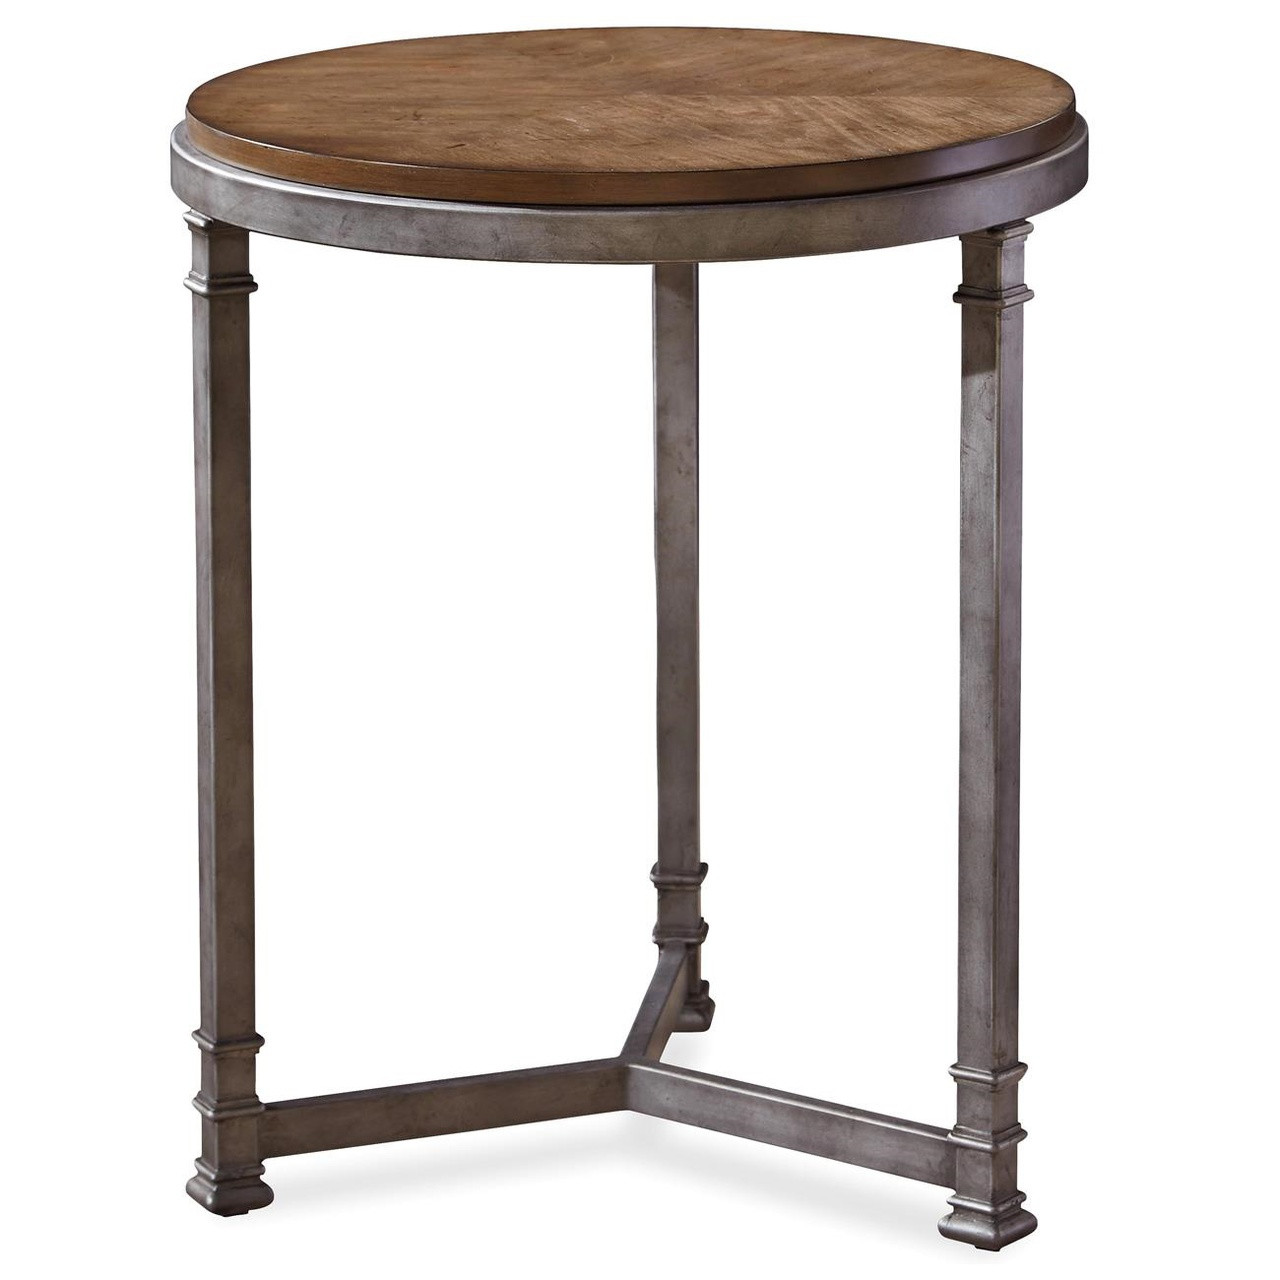 Maison Industrial Metal Leg Wood Round Side Table